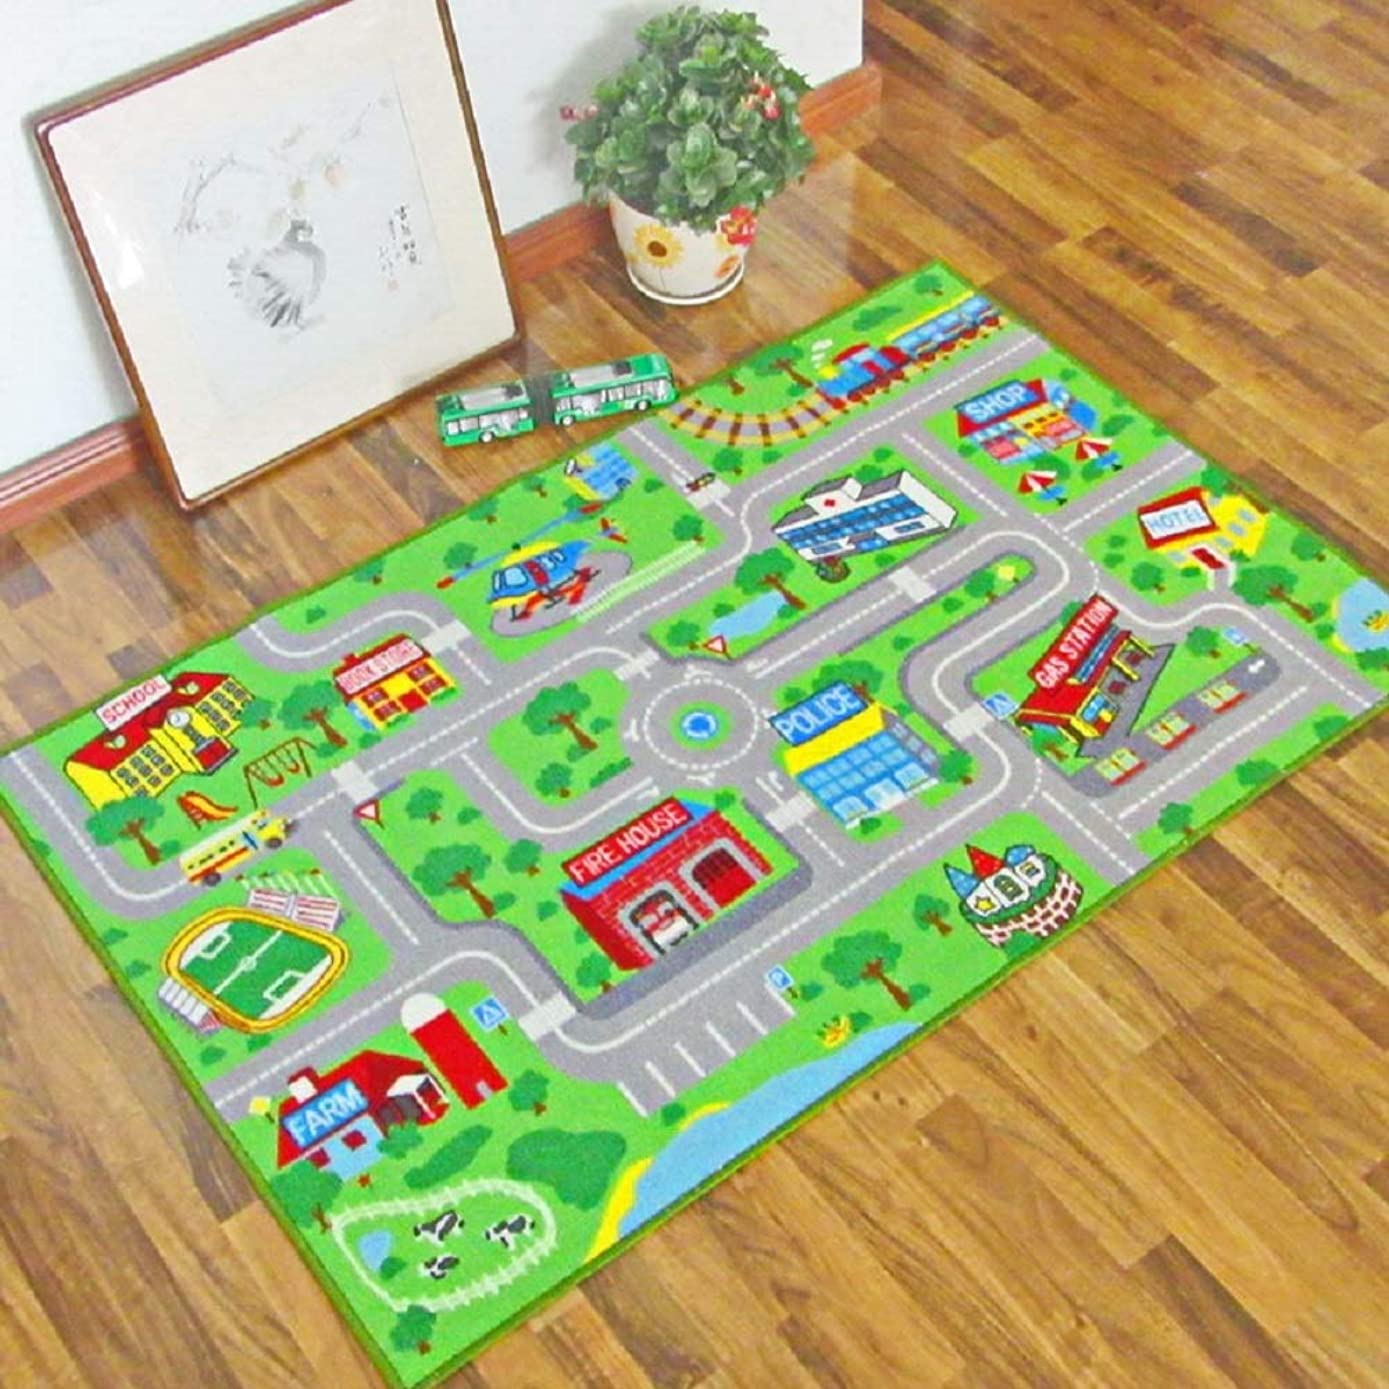 HEBE Kids Rug Playmat Carpet City Life Extra Large 3.3' x 5.3' Educational Learning Road Traffic System Kids Area Rugs for Bedroom Living Room Playroom, Play with Cars and Toys,Machine Washable